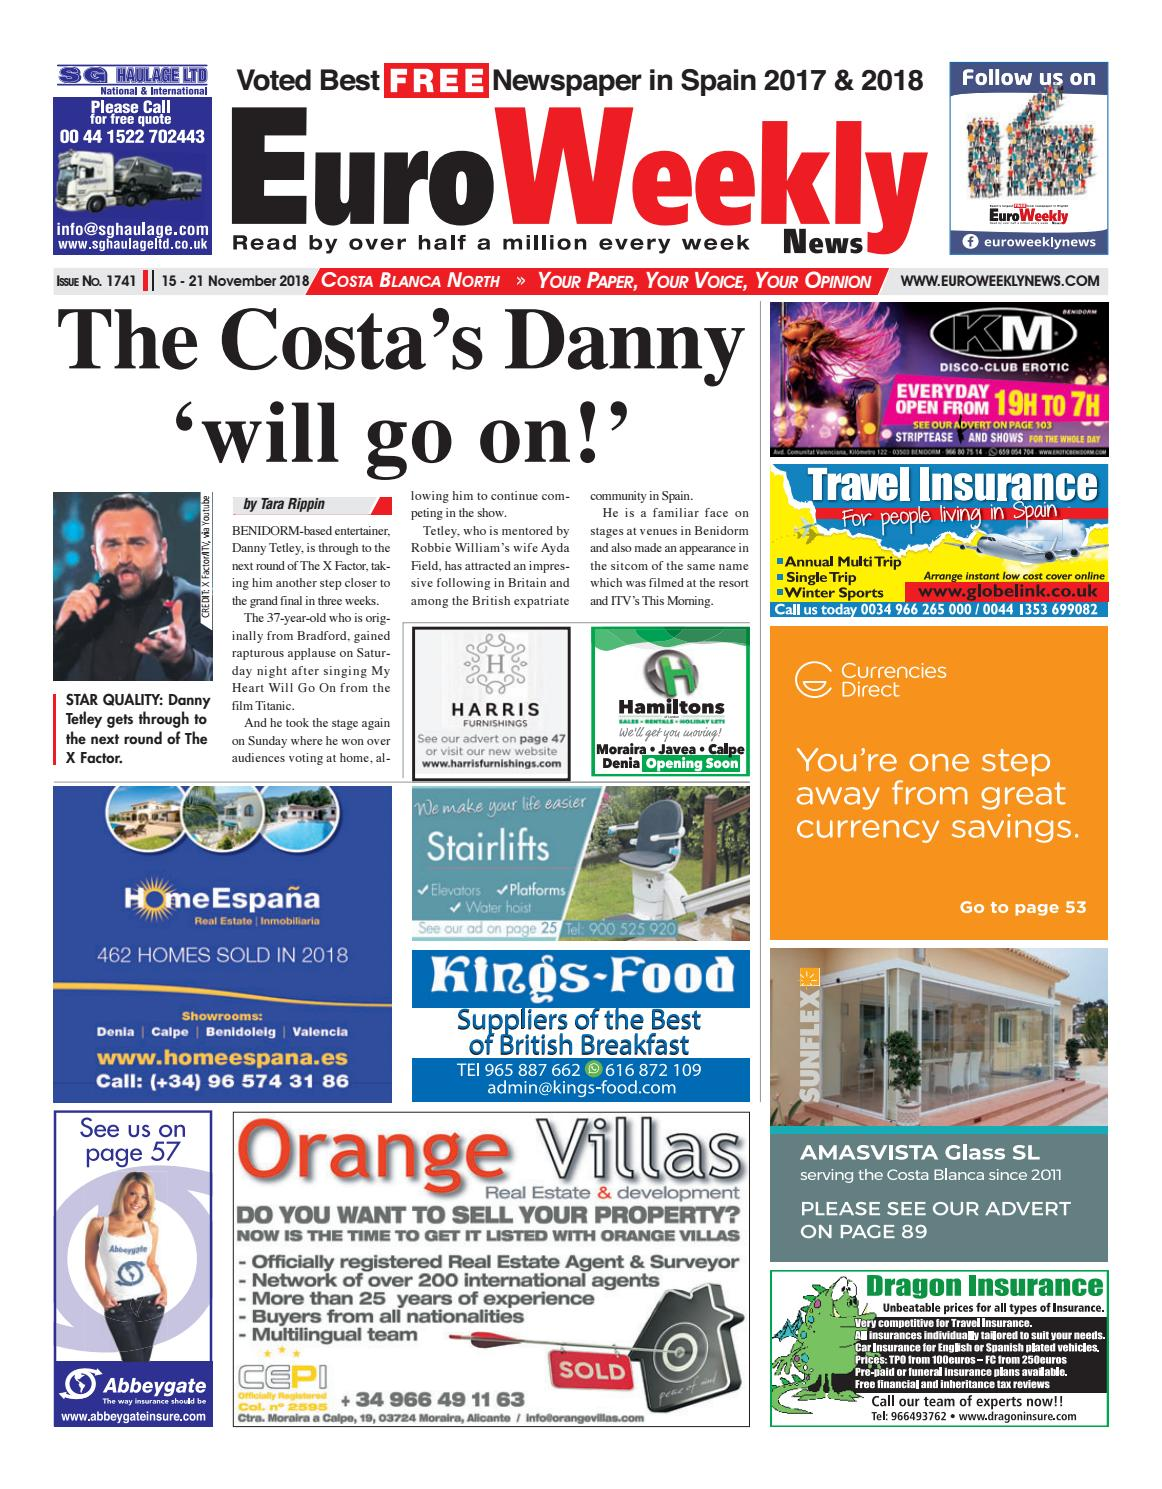 Euro Weekly News - Costa Blanca North 15-21 November 2018 Issue 1741 by  Euro Weekly News Media S.A. - issuu